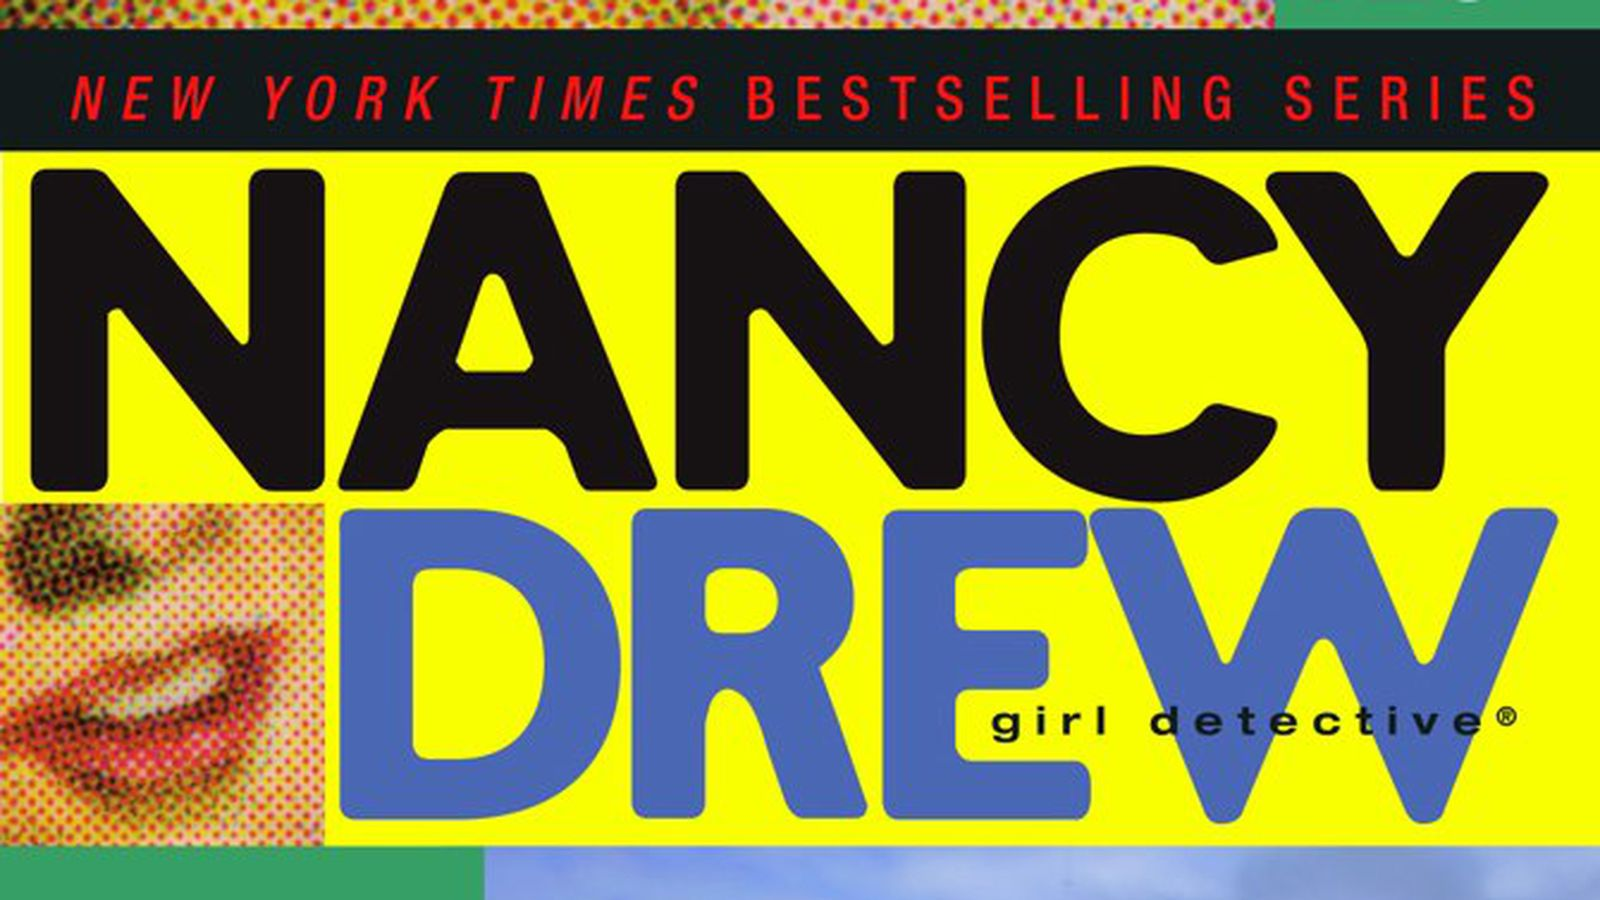 CBS reportedly passes on Nancy Drew reboot because men didn't like it enough   The Verge